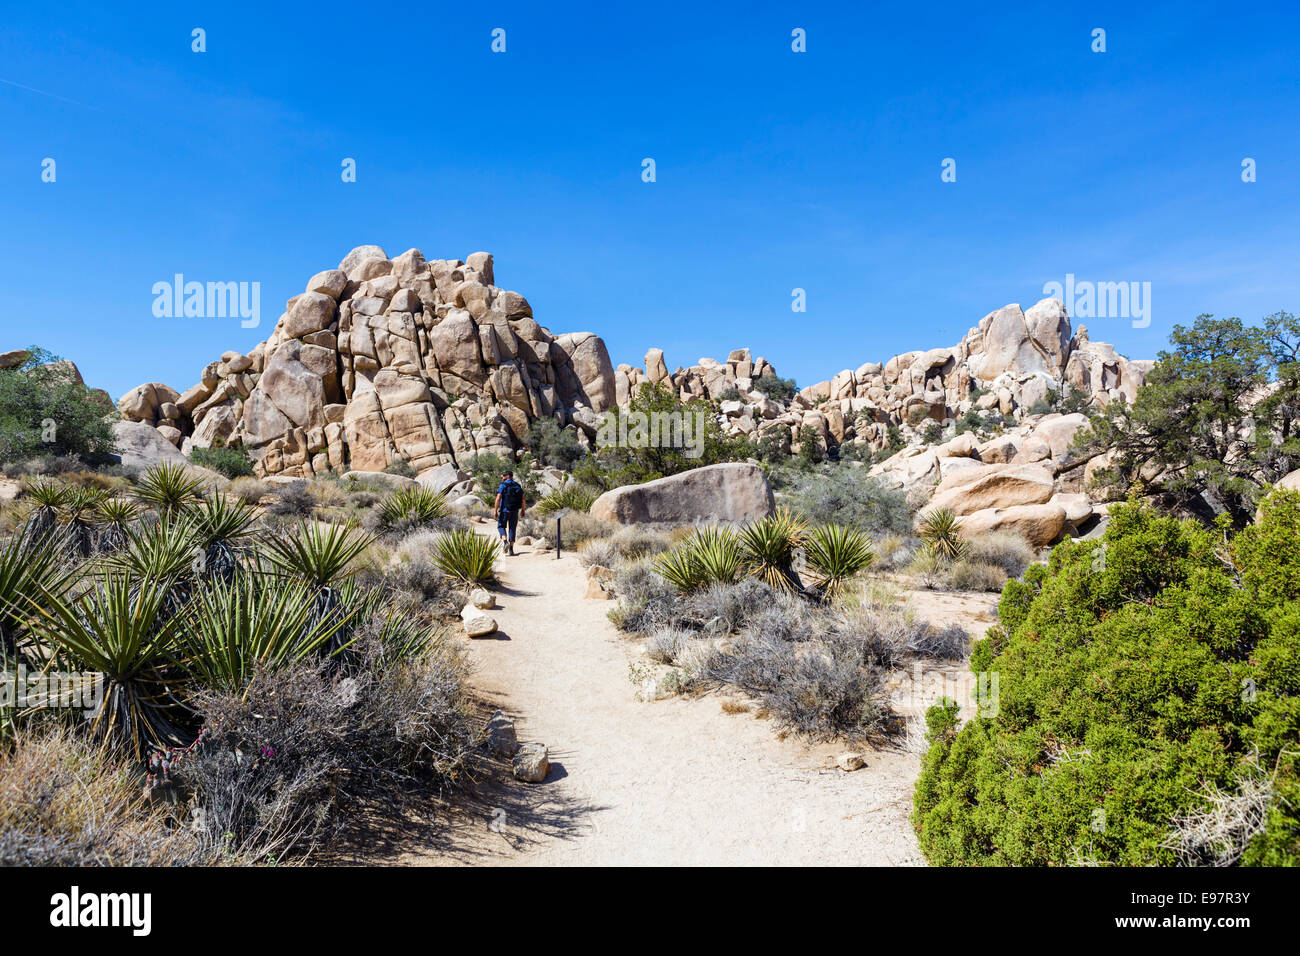 Walker on trail in Hidden Valley, a former cattle rustler hide-out, Joshua Tree National Park, Southern California, - Stock Image